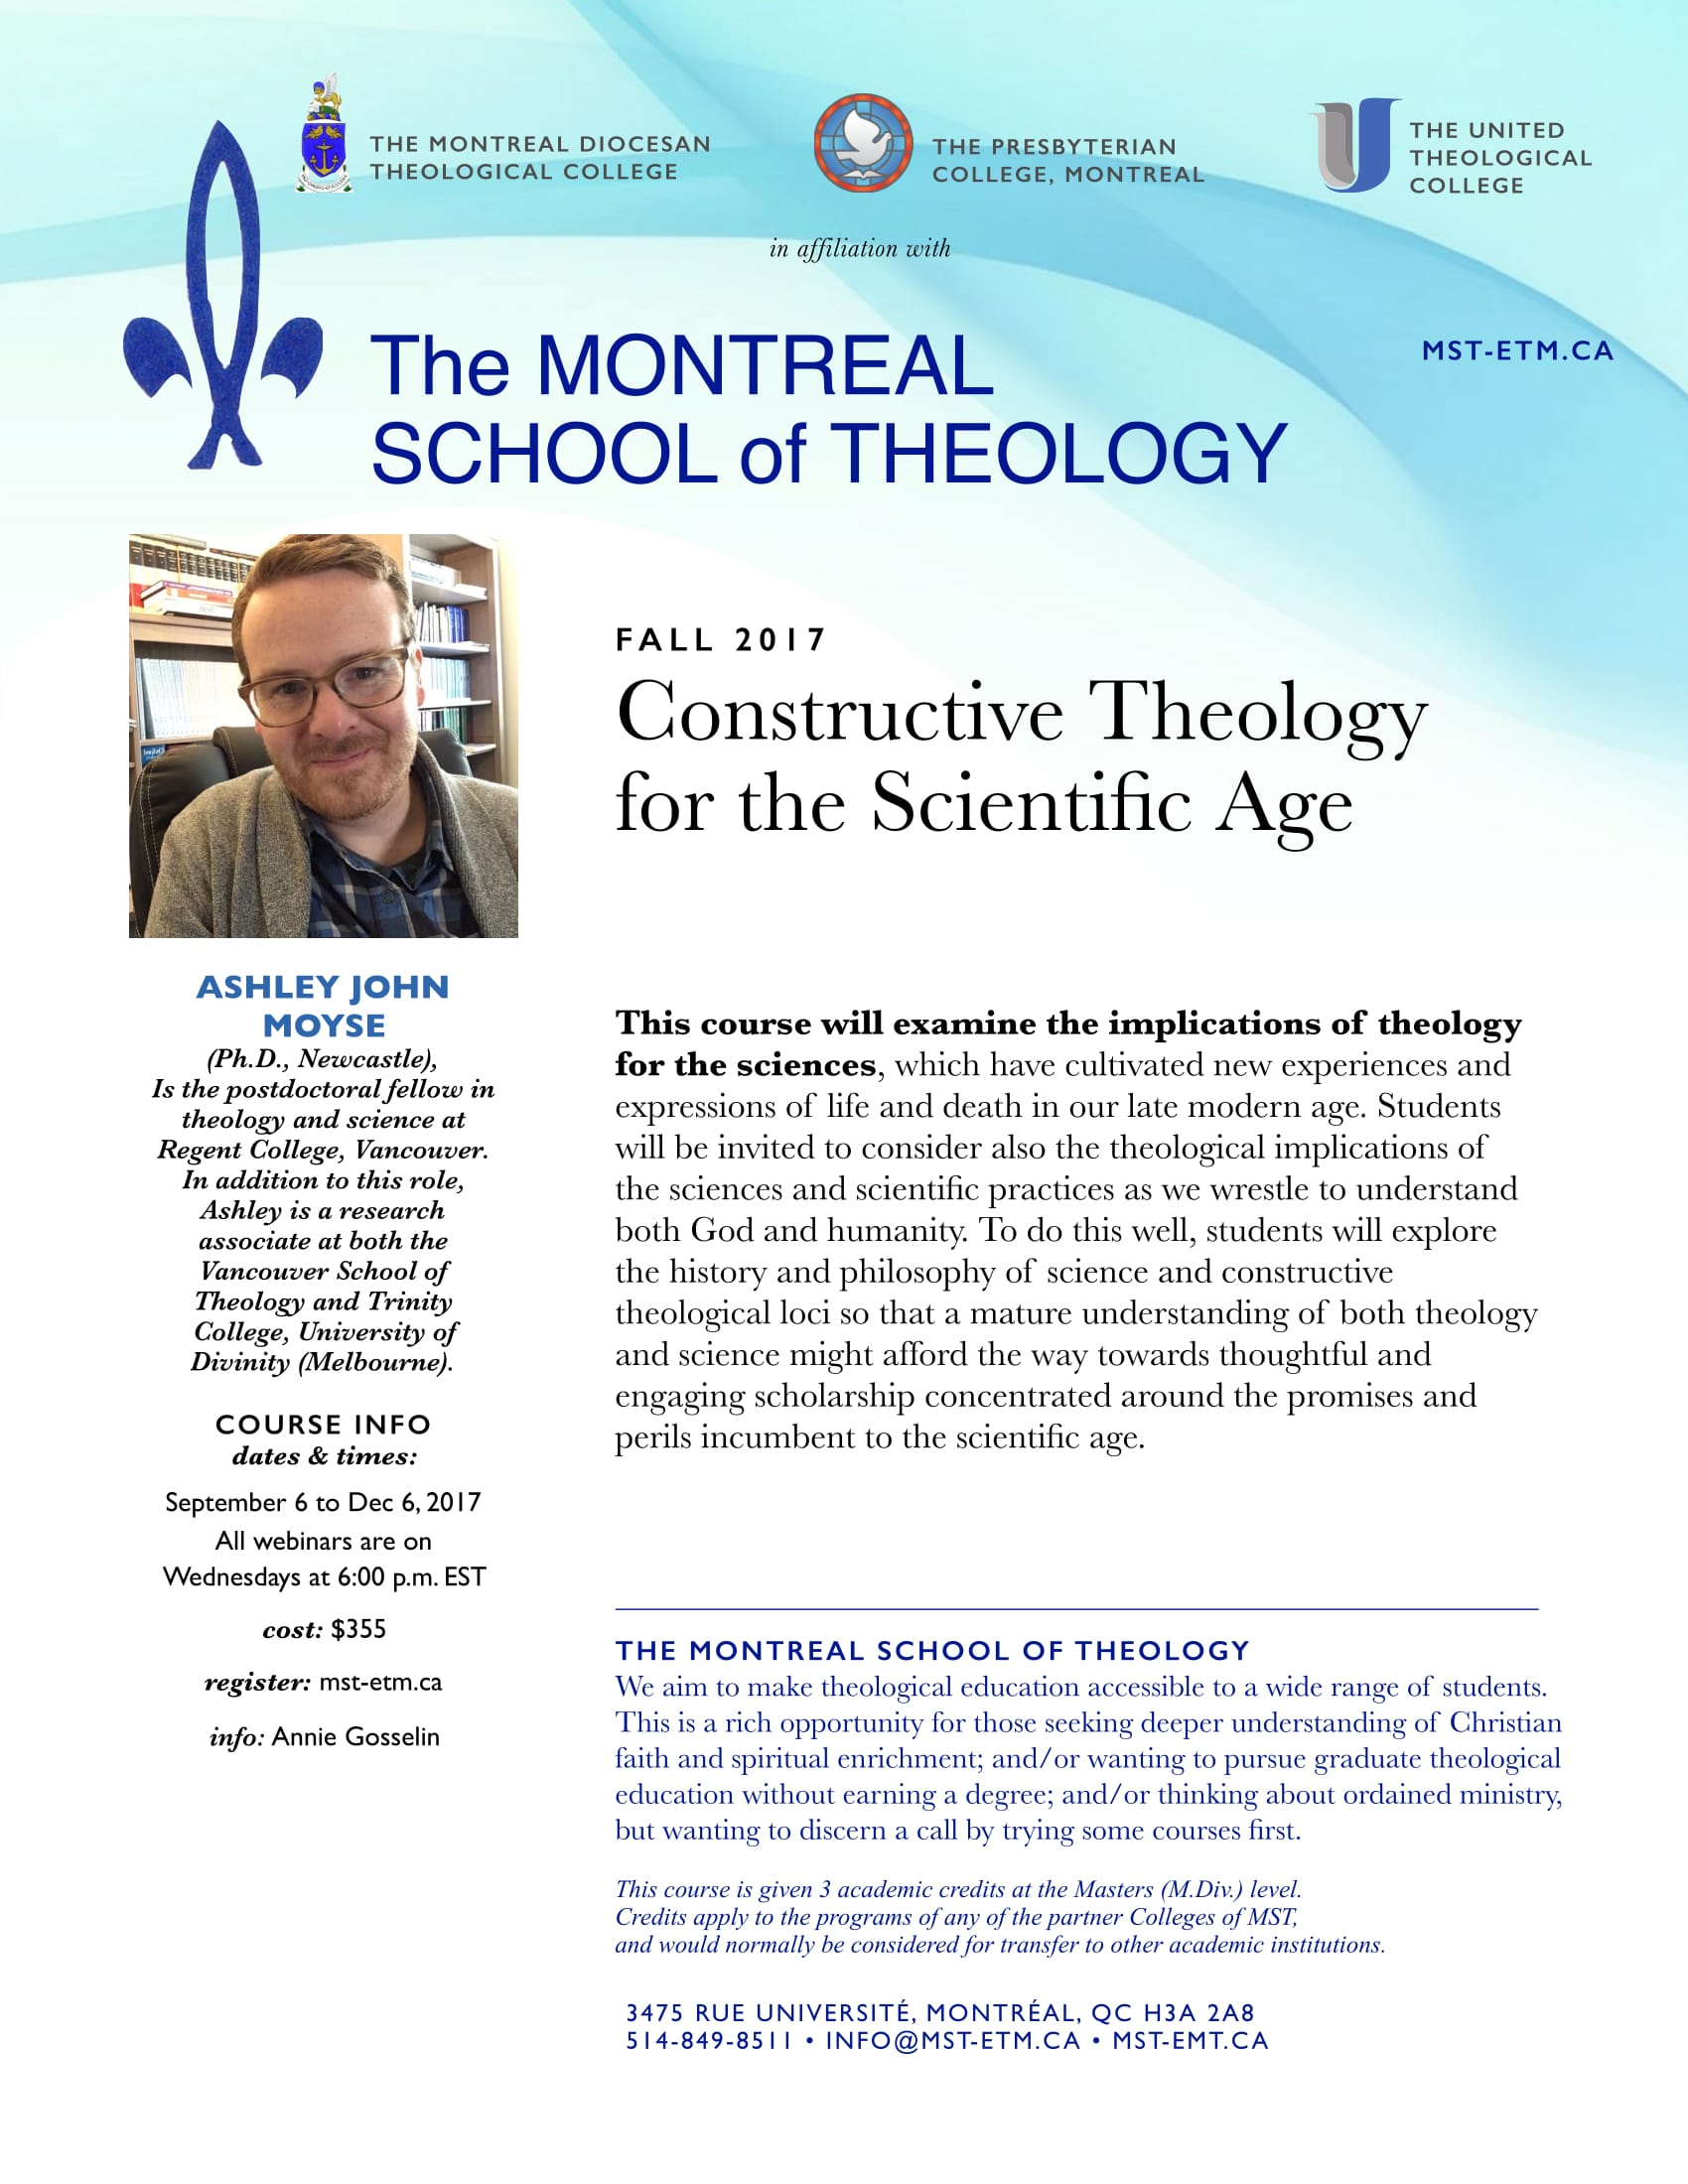 Constructive Theology for the Scientific Age- on-line credit course offered fall 2017